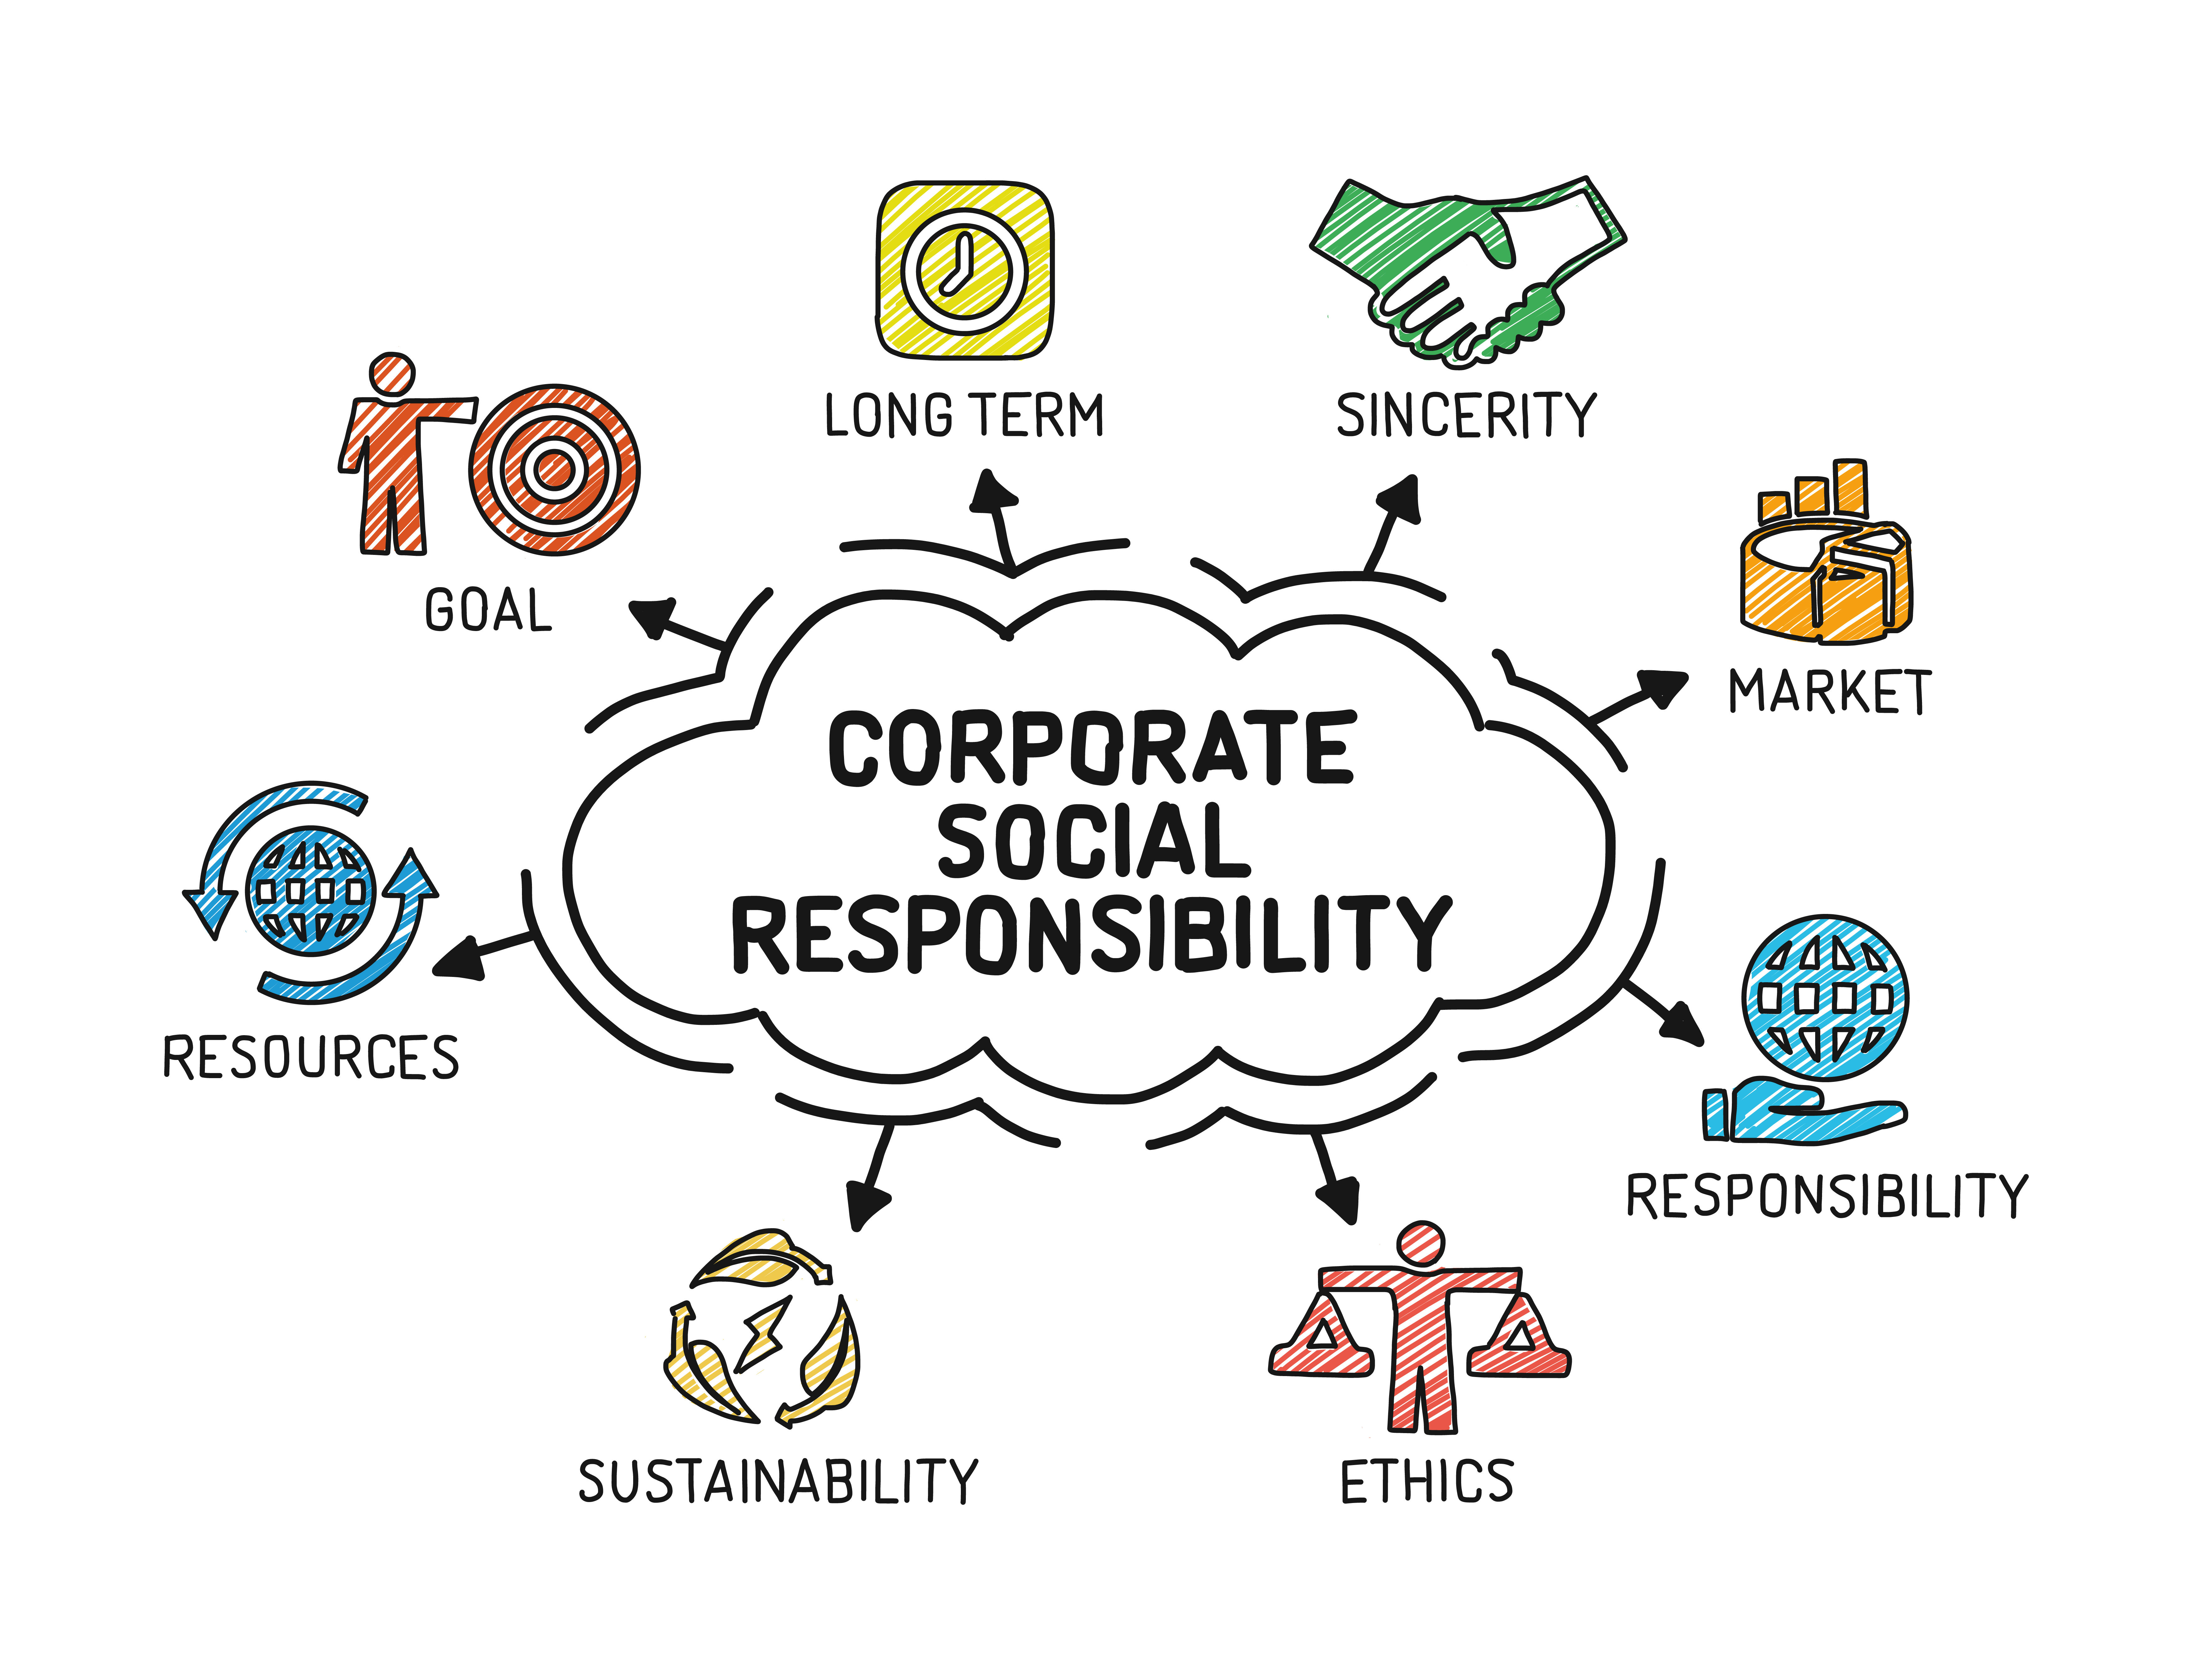 Corporate social responsibility strategy strategic options global considerations